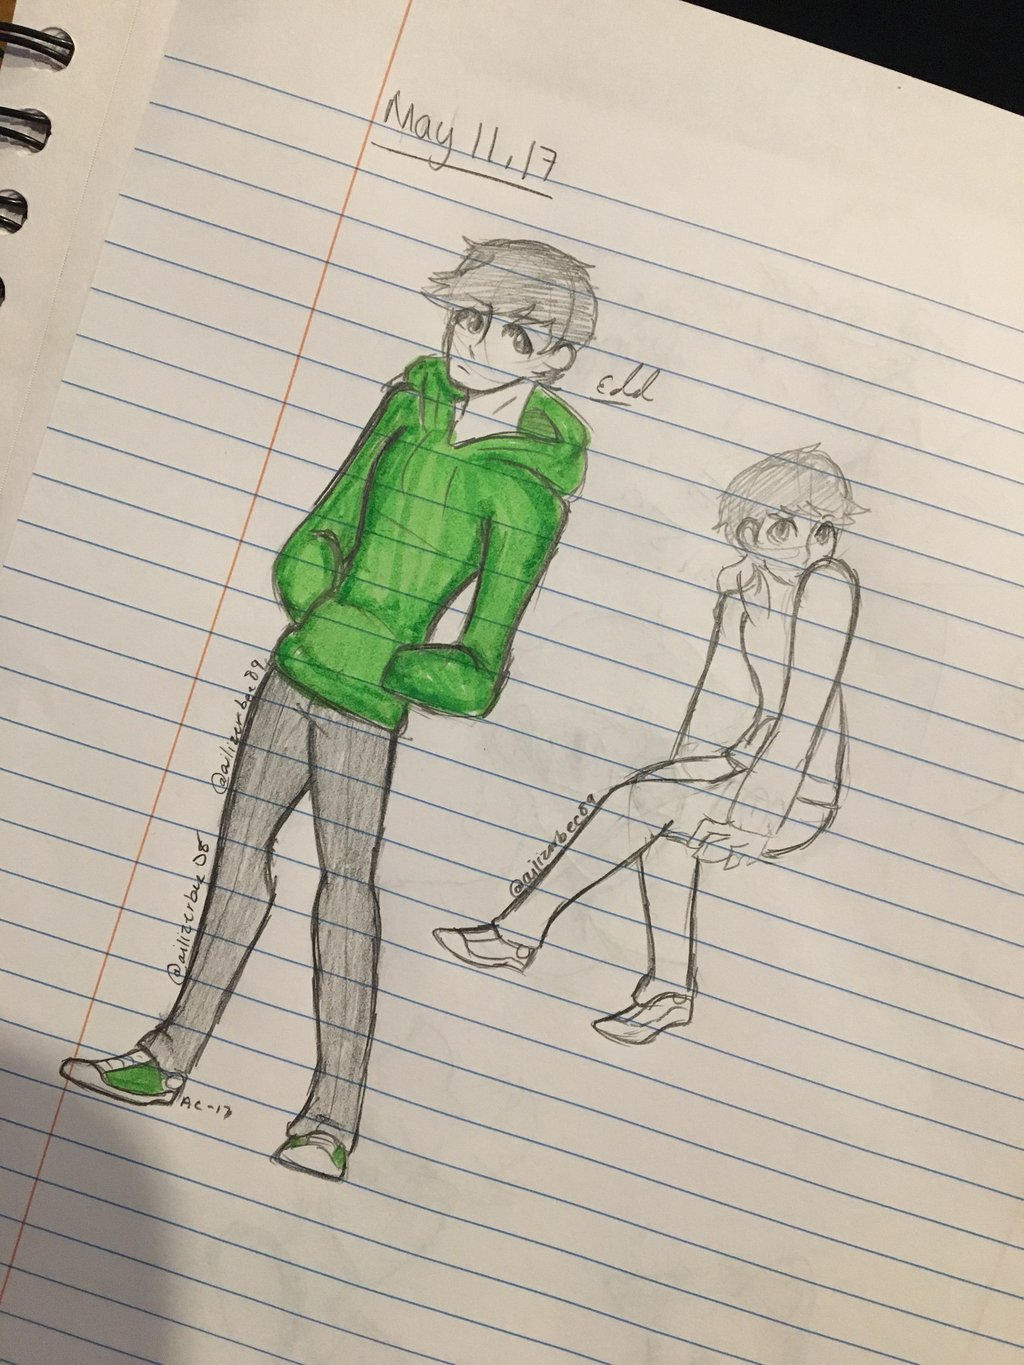 Edd School Doodle  by Ailizerbee08